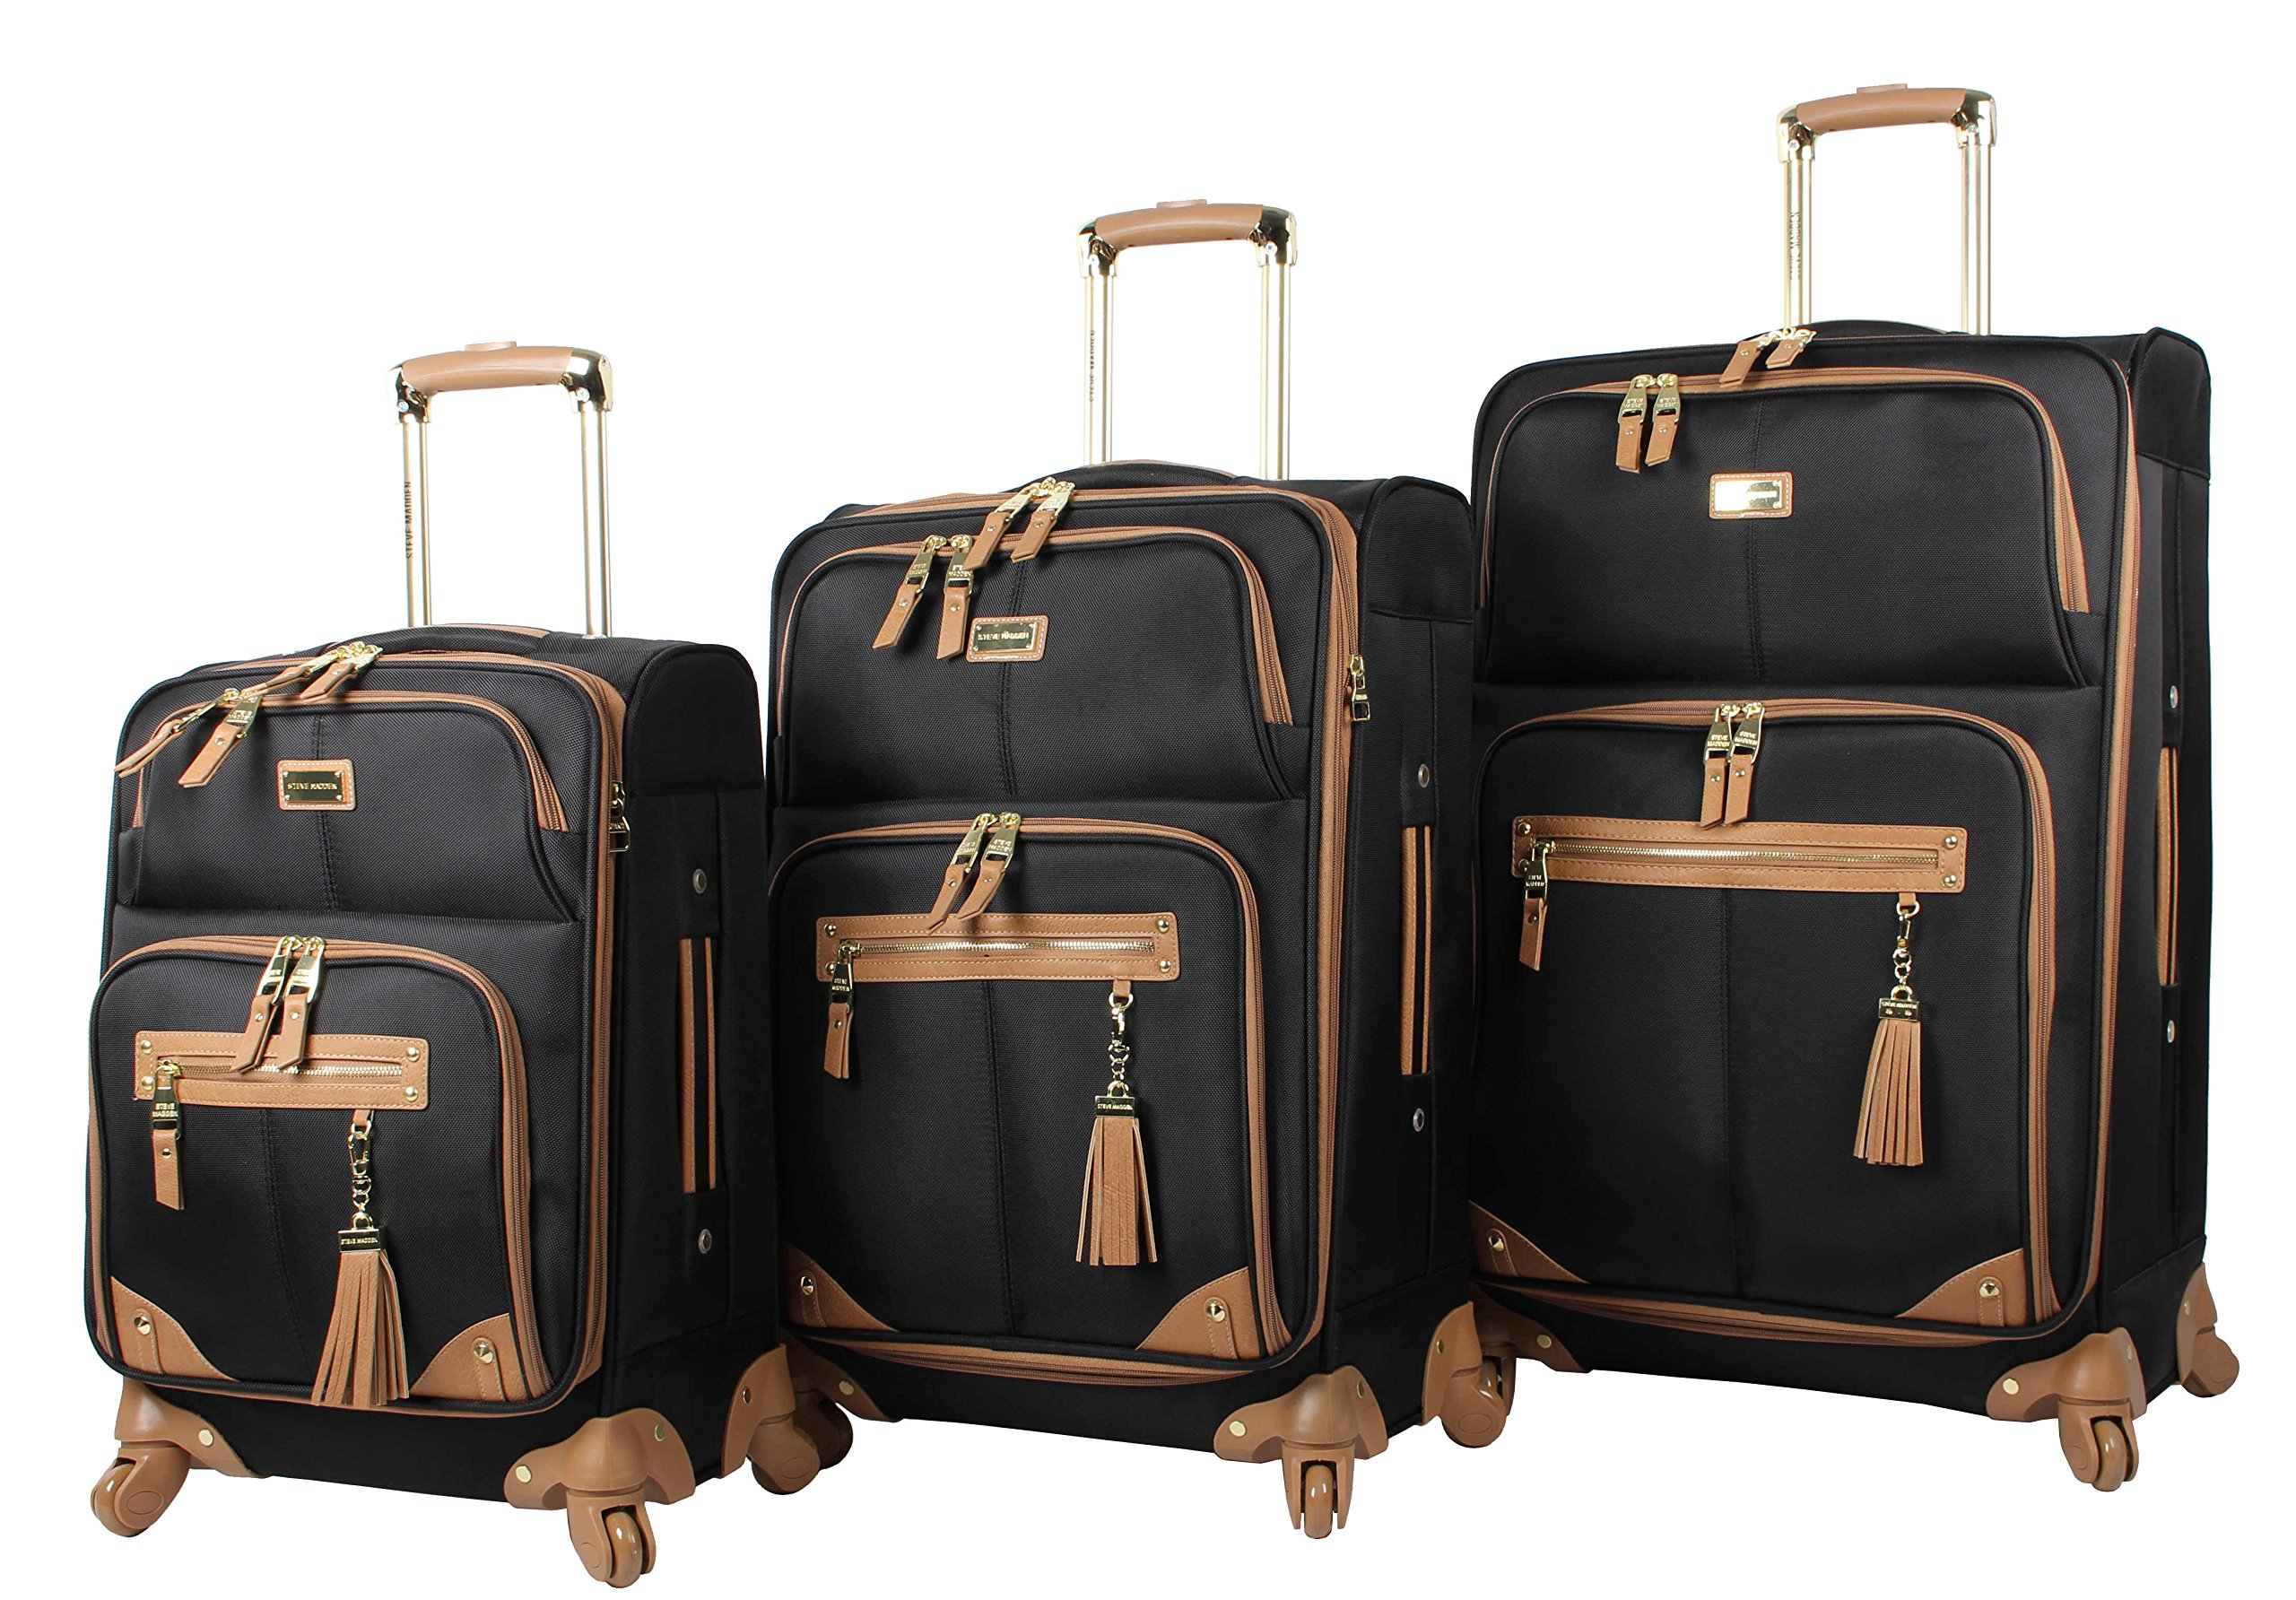 Steve Madden Luggage 3 Piece Softside Spinner Suitcase Set Collection (One Size, Harlo Black) by Steve Madden Luggage